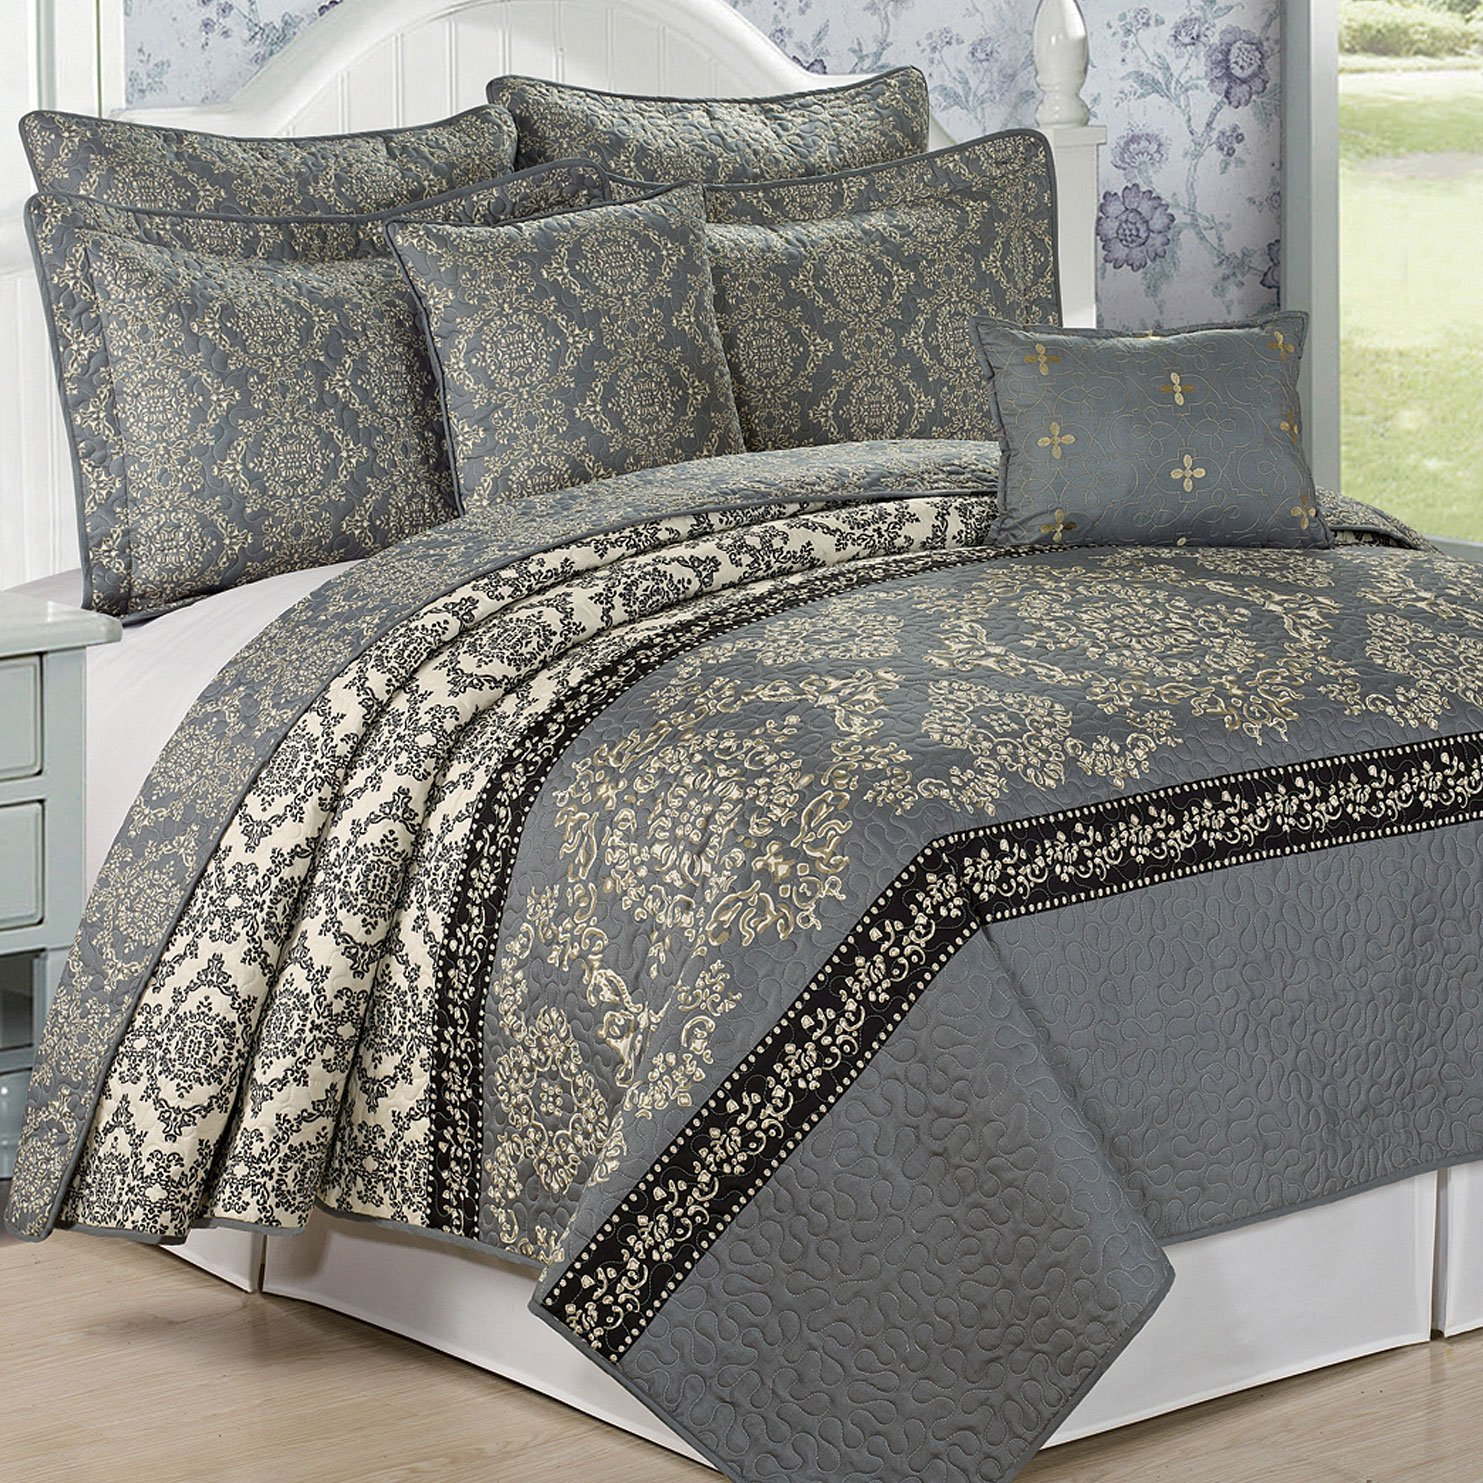 7 Piece Mystic Bedspread Quilts Set, King, Charcoal